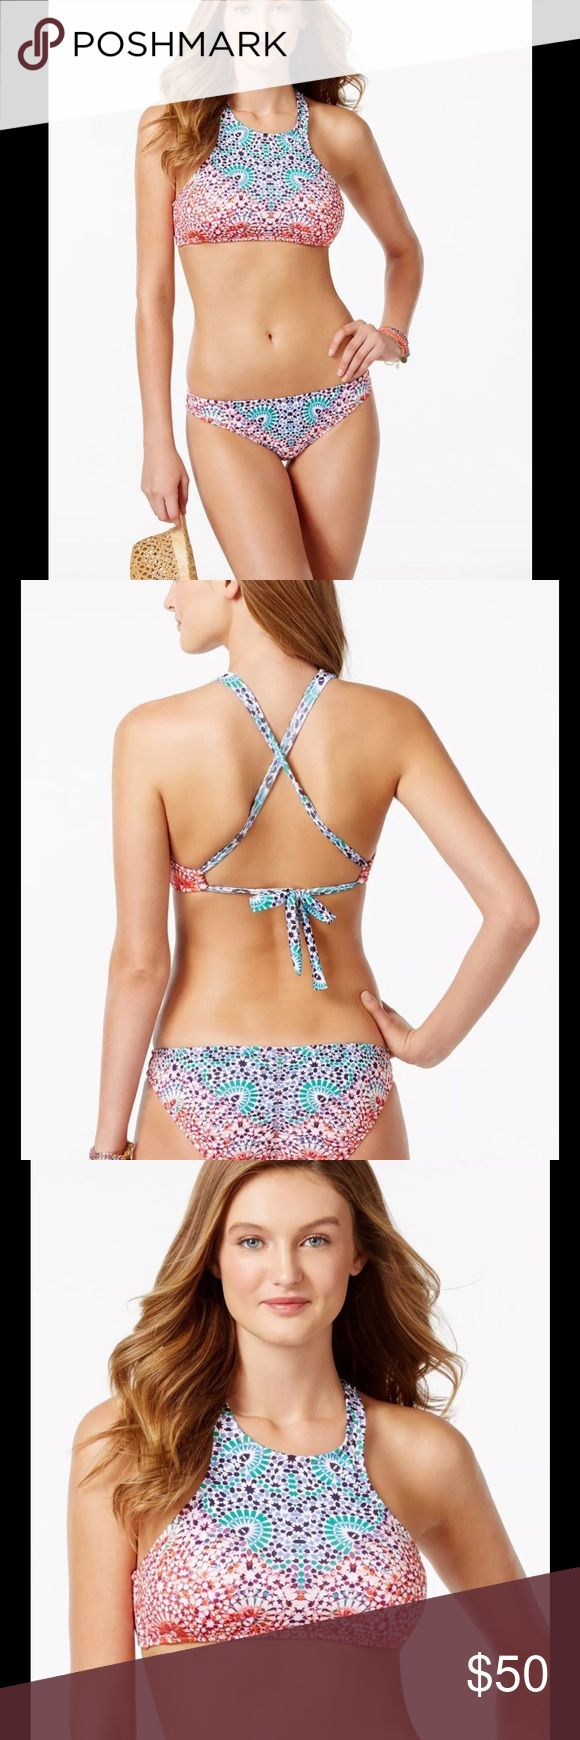 Becca Bikini Bathing Suit Swimwear NWT Becca by Rebecca Virtue Fancy Halter Style High Neck Bikini Bathing Suit. Lined bust with removable soft pads. Self tie at neck and back. Fully lined bikini bottoms. Top fits up to D Cup. BECCA Swim Bikinis